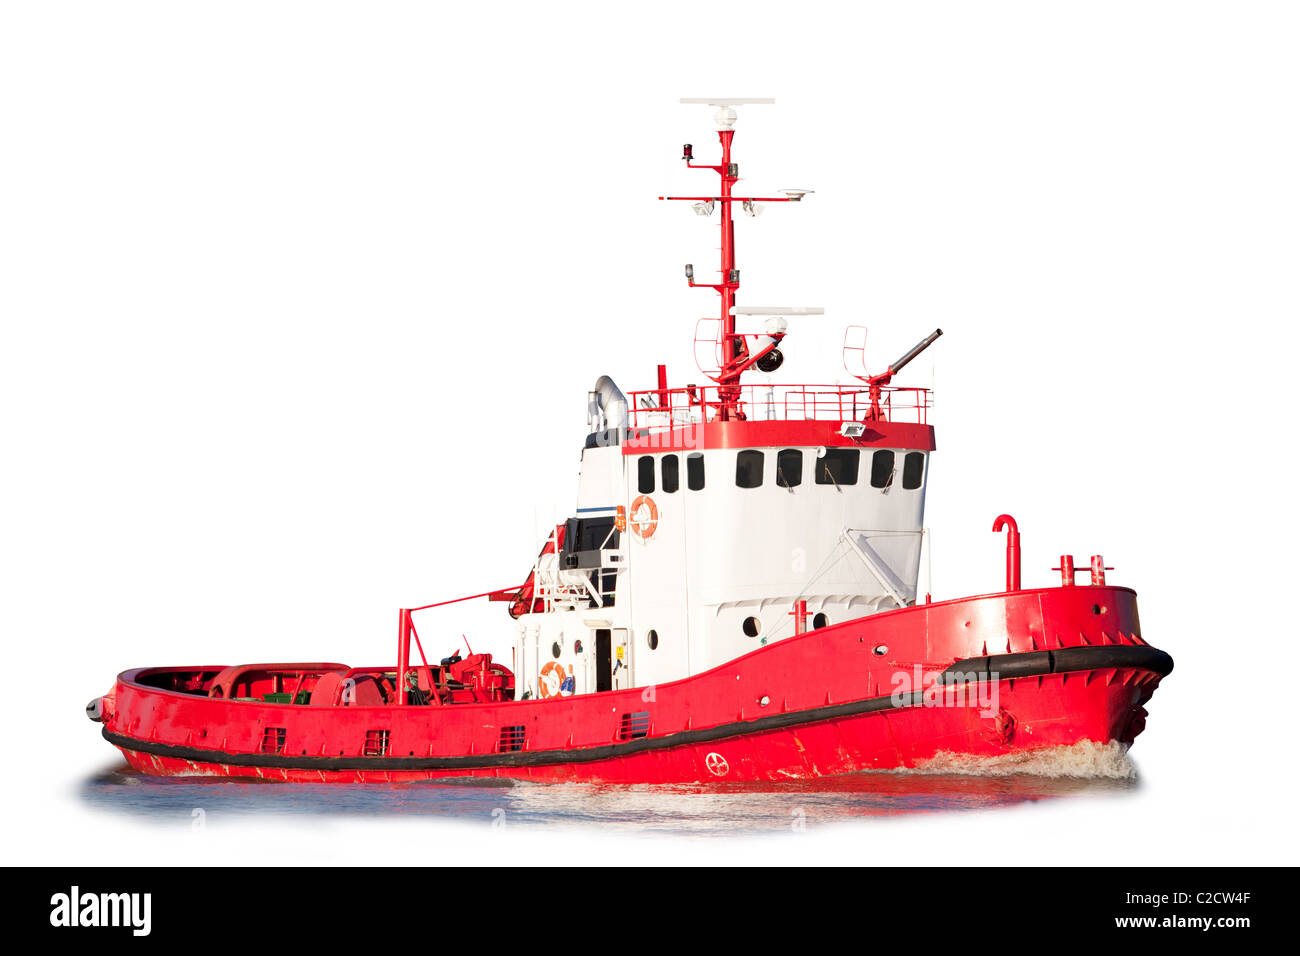 Tug Boat Cut Out Stock Images Pictures Alamy Tugboat Wiring Diagram An Isolated Equipped With Saftey Equipment Image